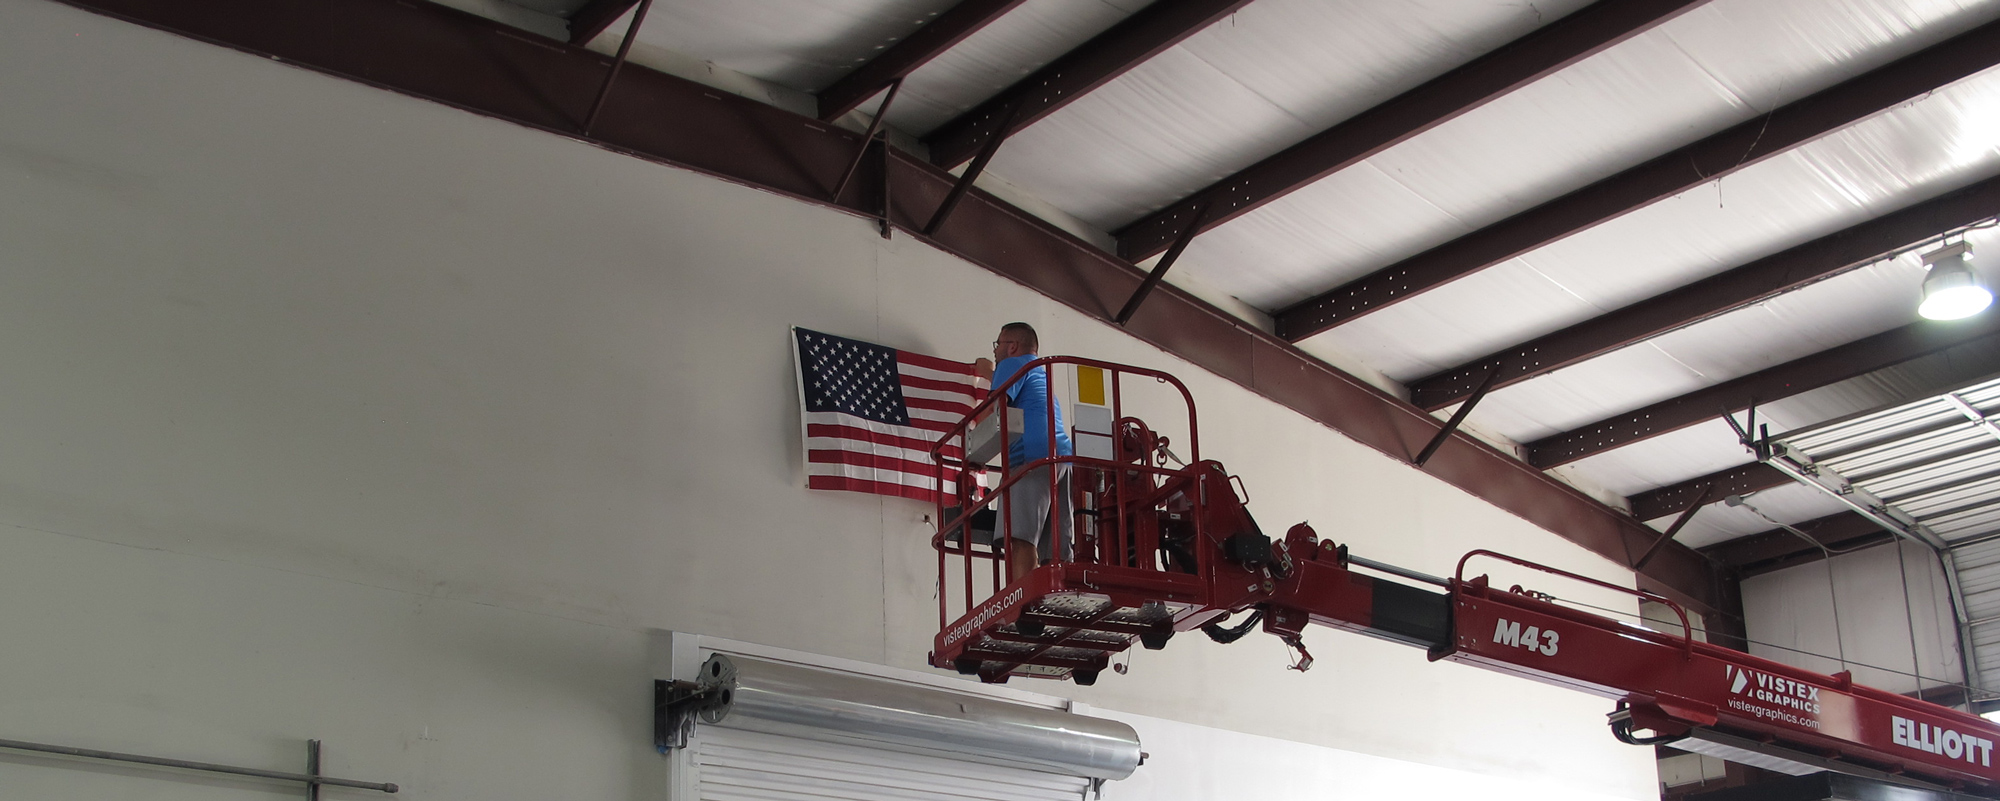 Owner using crane ruck to hang up the America Flag in manufacturing facility